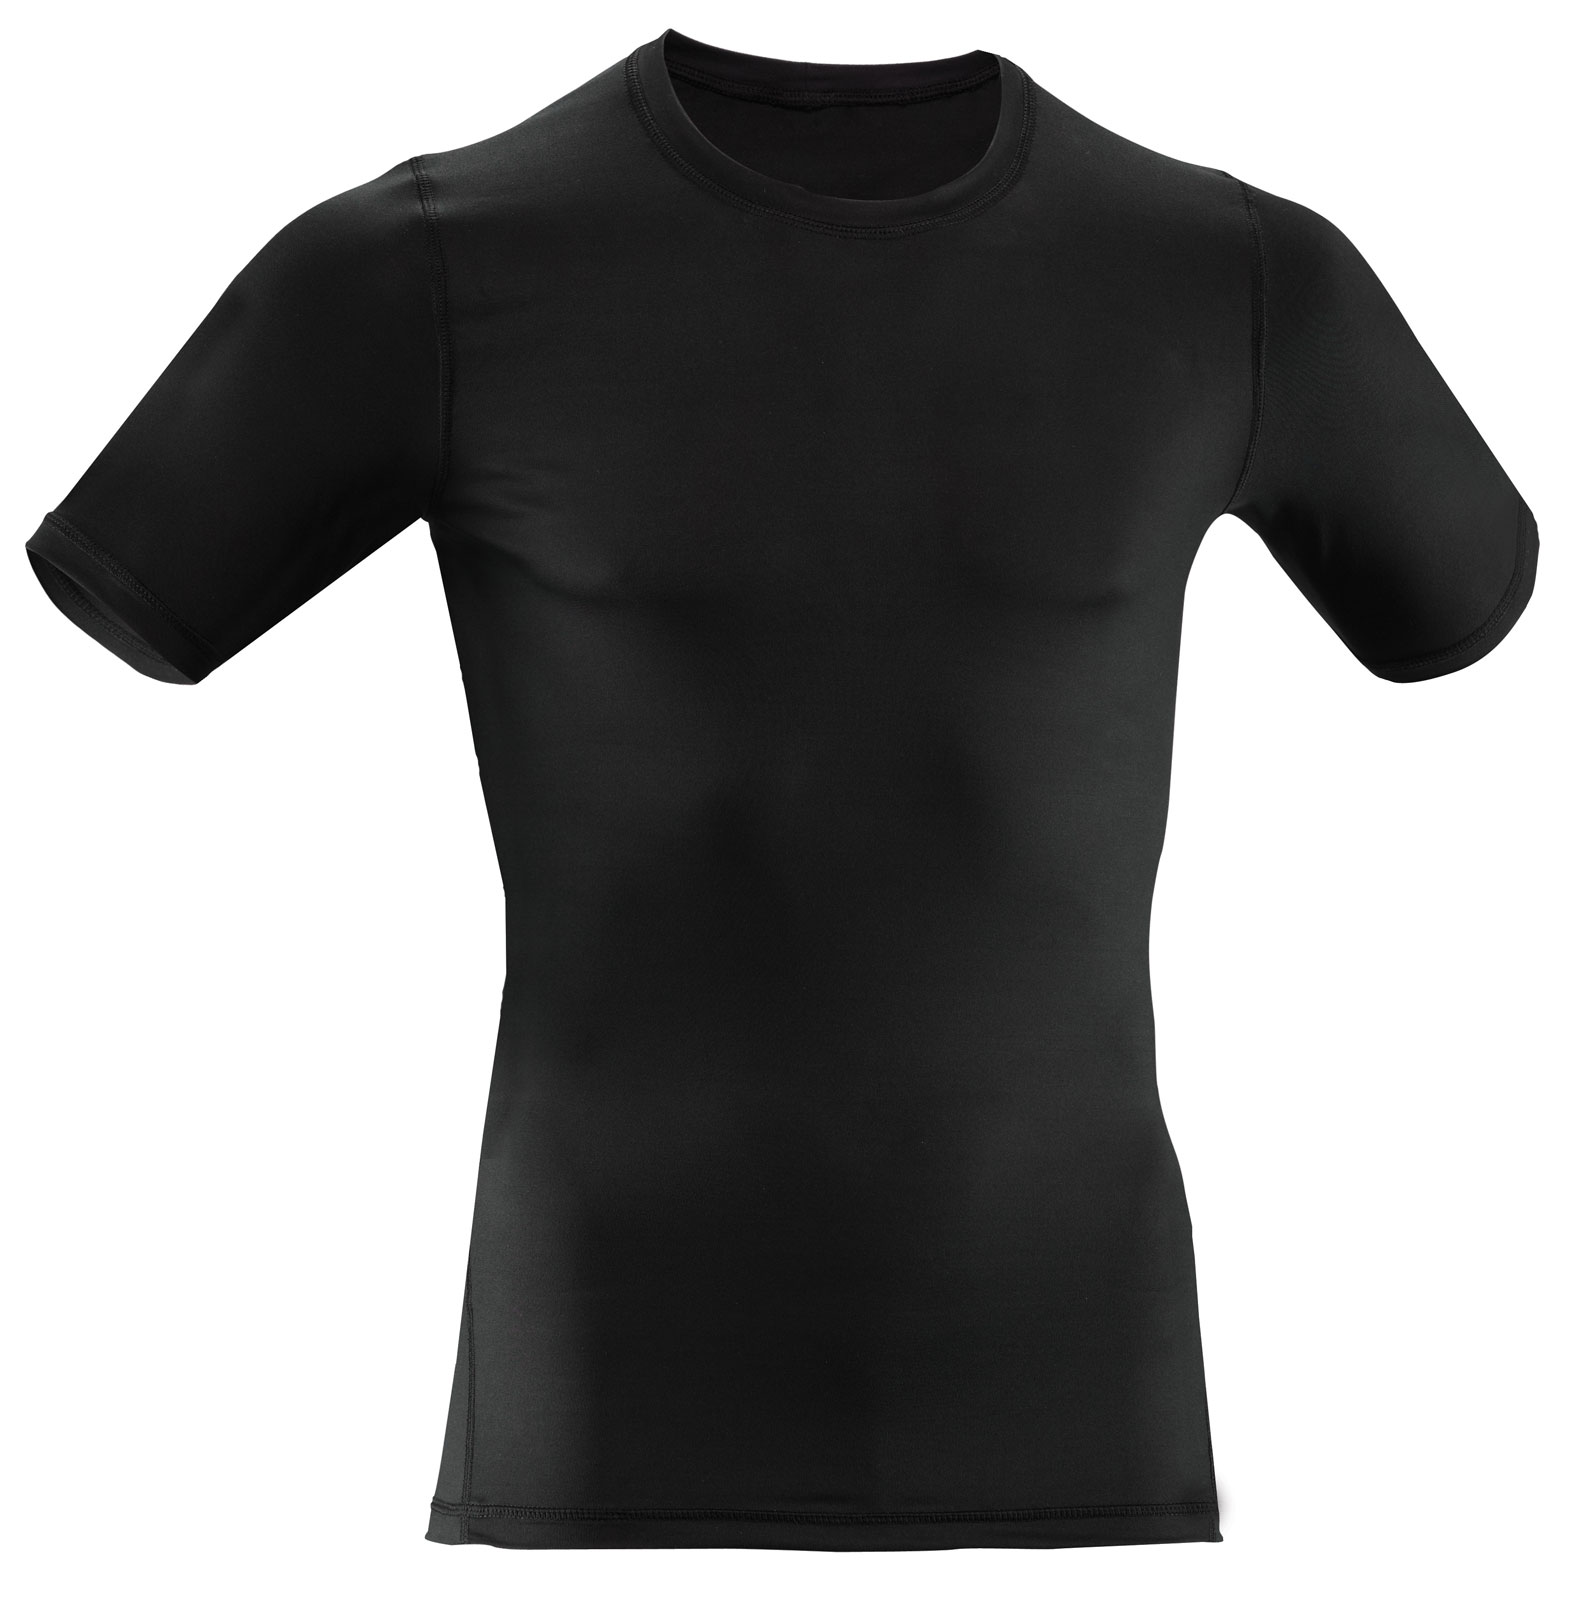 Youth Compression Tech Short Sleeve Shirt